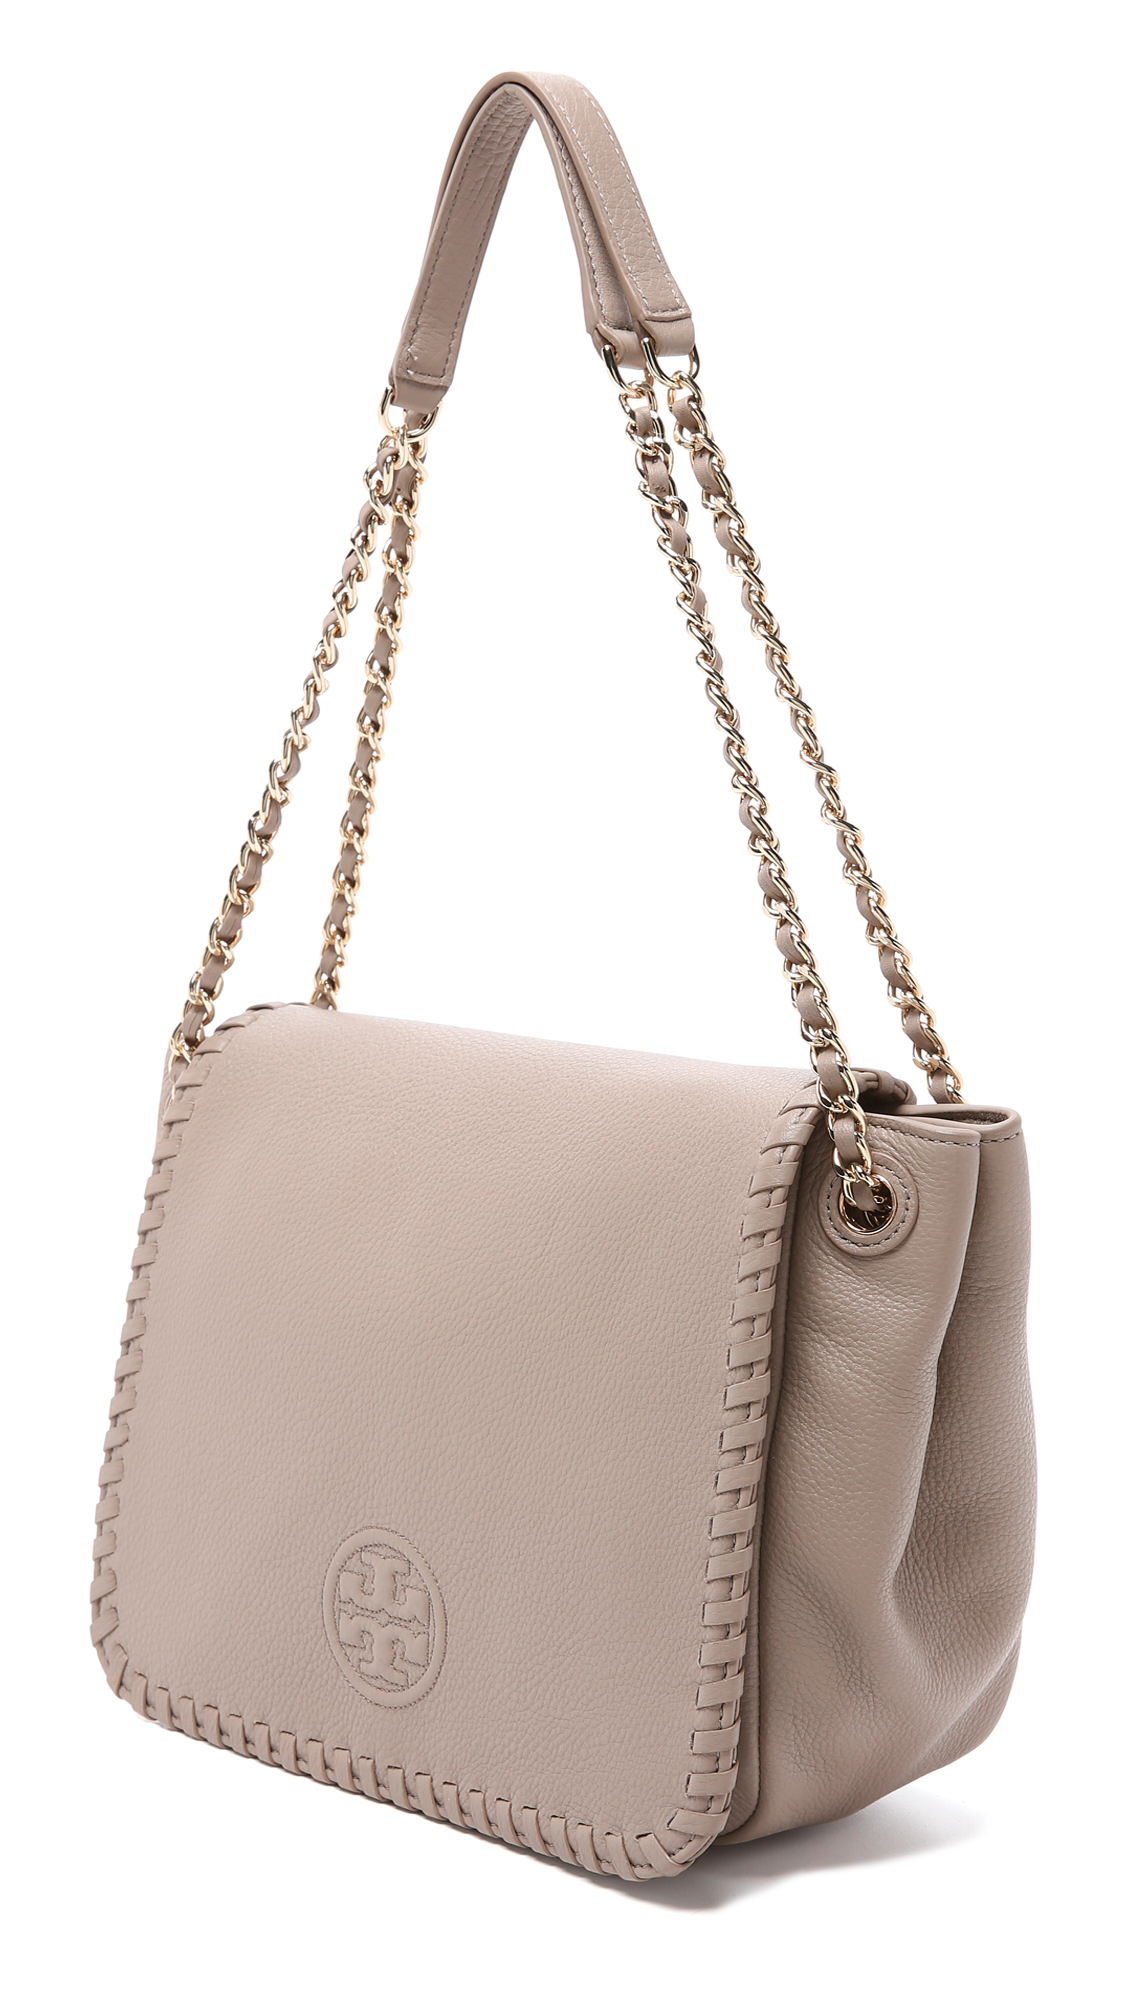 eb96cc4a3714 ... coupon code for tory burch marion small flap shoulder bag shopbop 3d185  8bb19